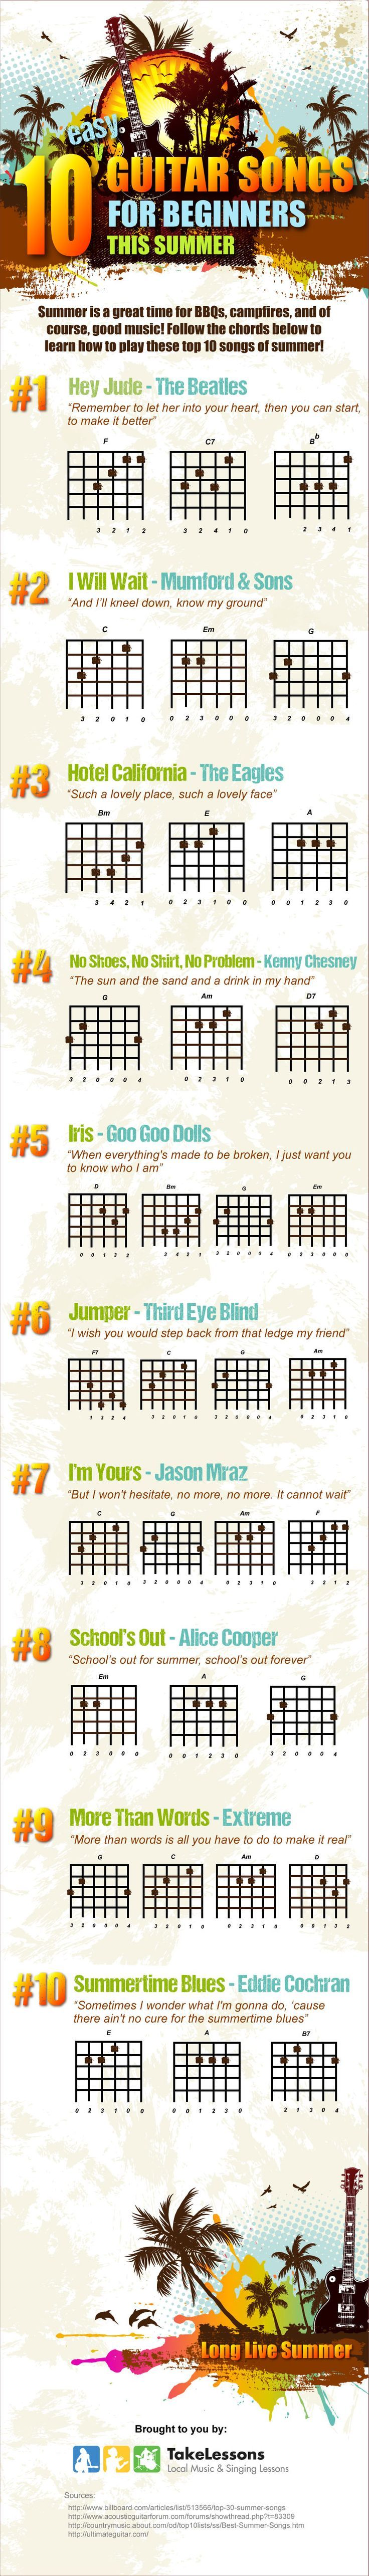 GuitarJamz's List of Easy Beginner Acoustic Songs For ...